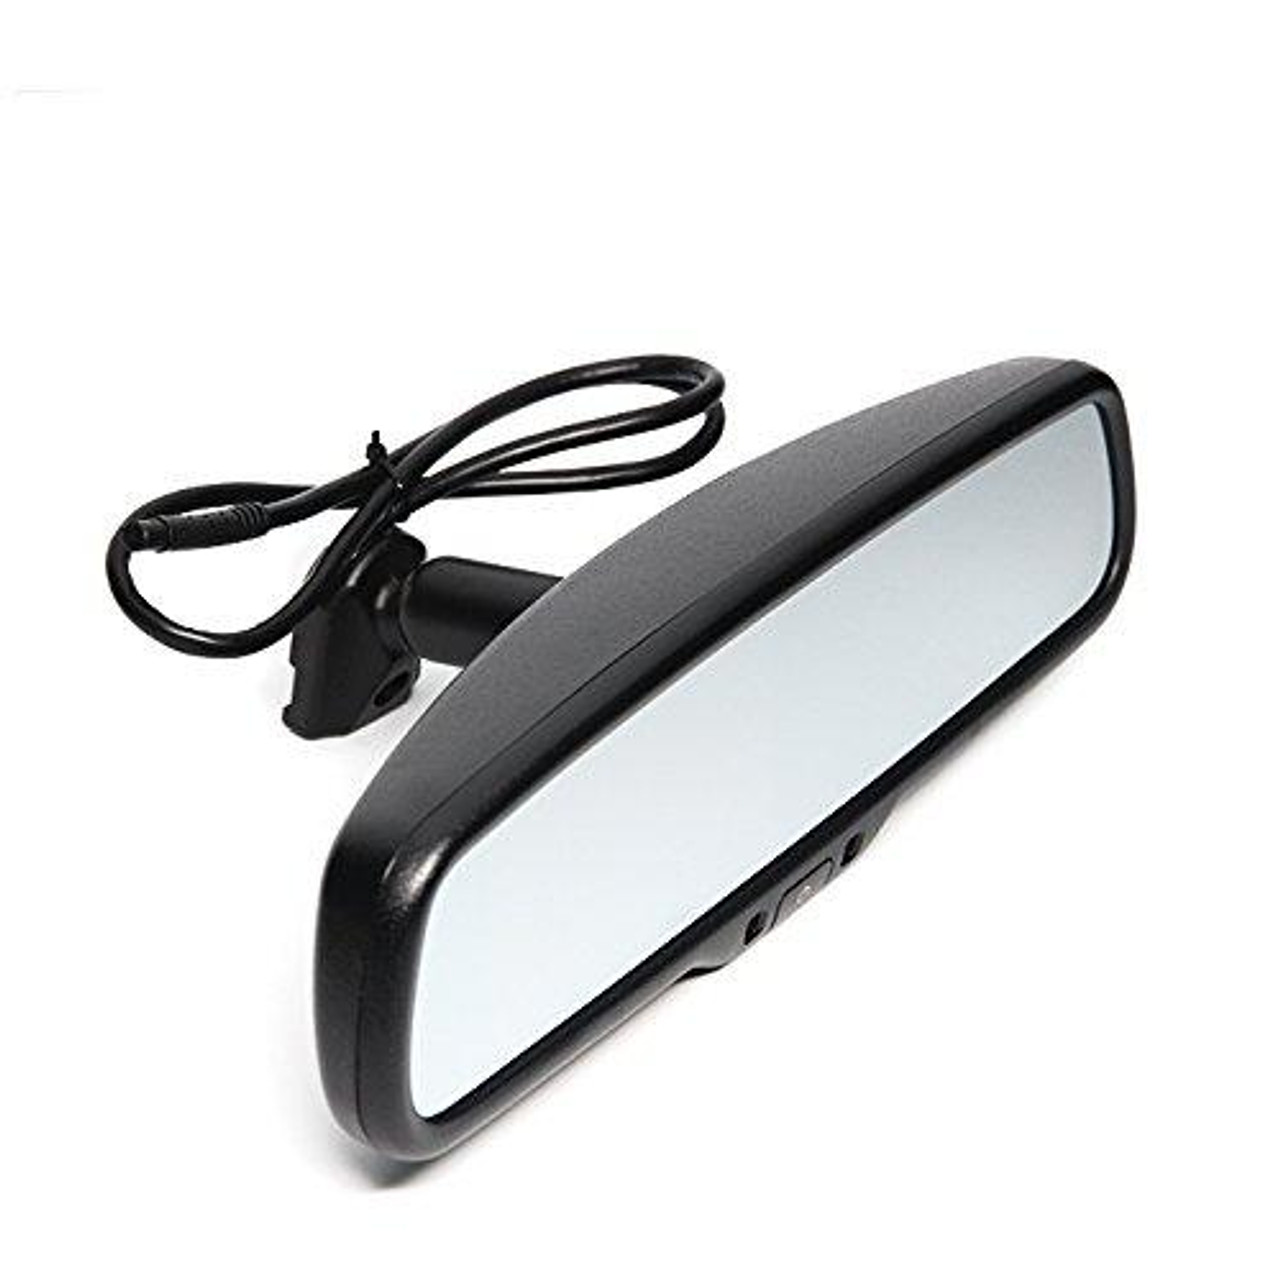 G-Series Rear View Replacement Mirror Monitor